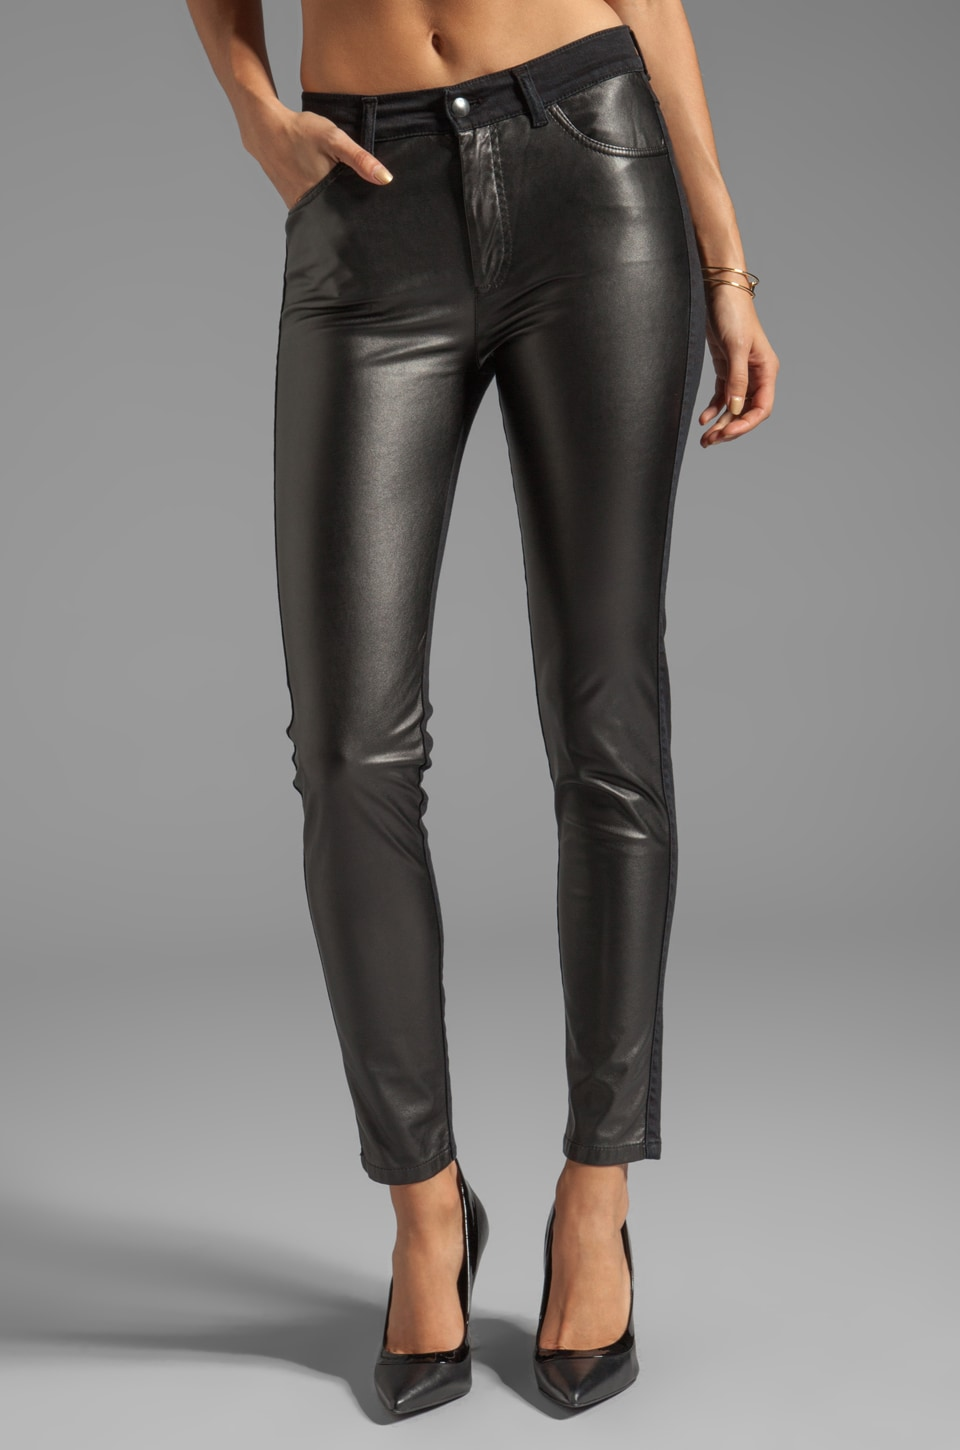 McQ Alexander McQueen Denim Leather Stretch Patch Pant in Black